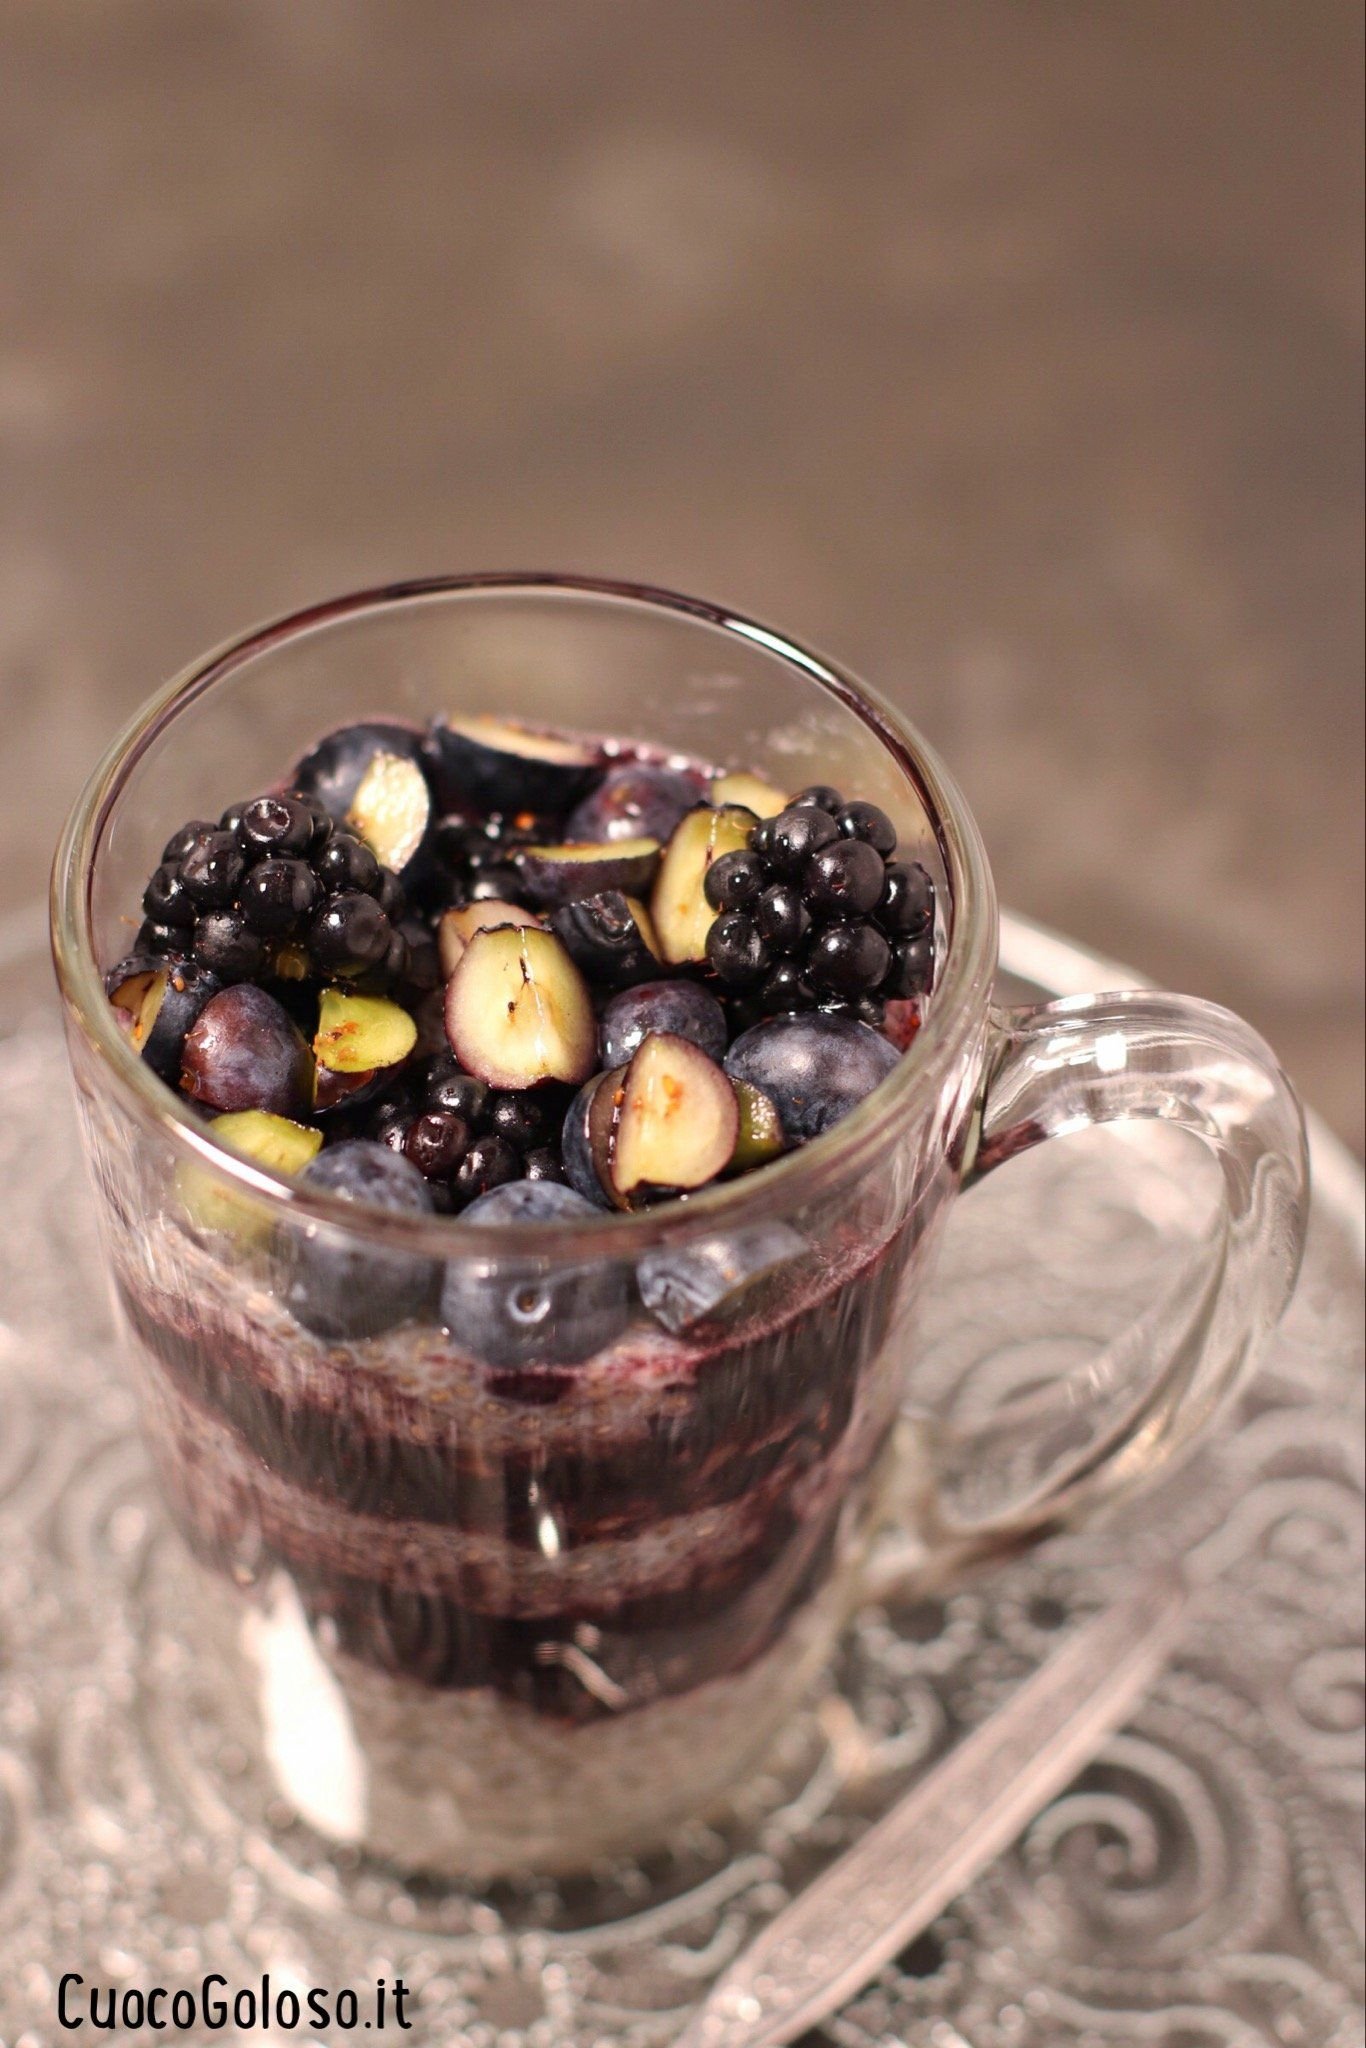 Chia Pudding con More e Mirtilli